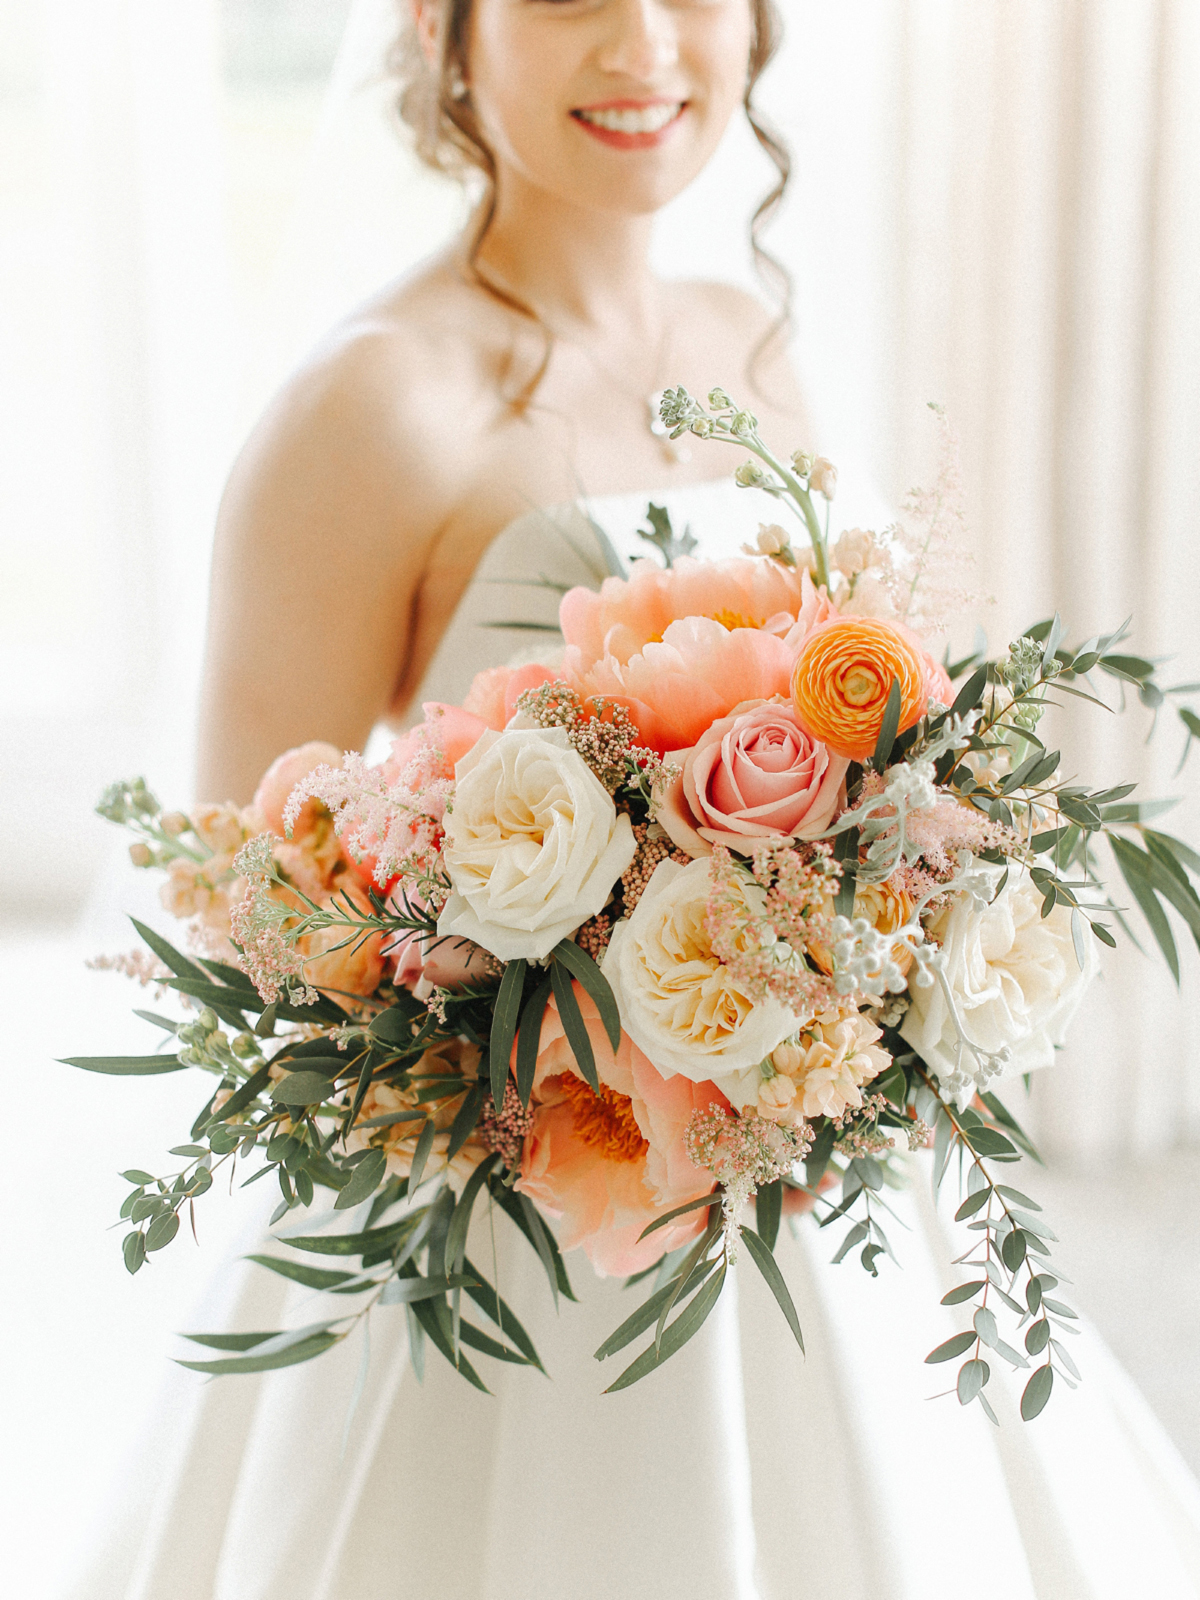 Oversized peach wedding bouquet - A Caroline Castigliano Gown for a Chic and Classic Manor House Wedding in Shades of Peach